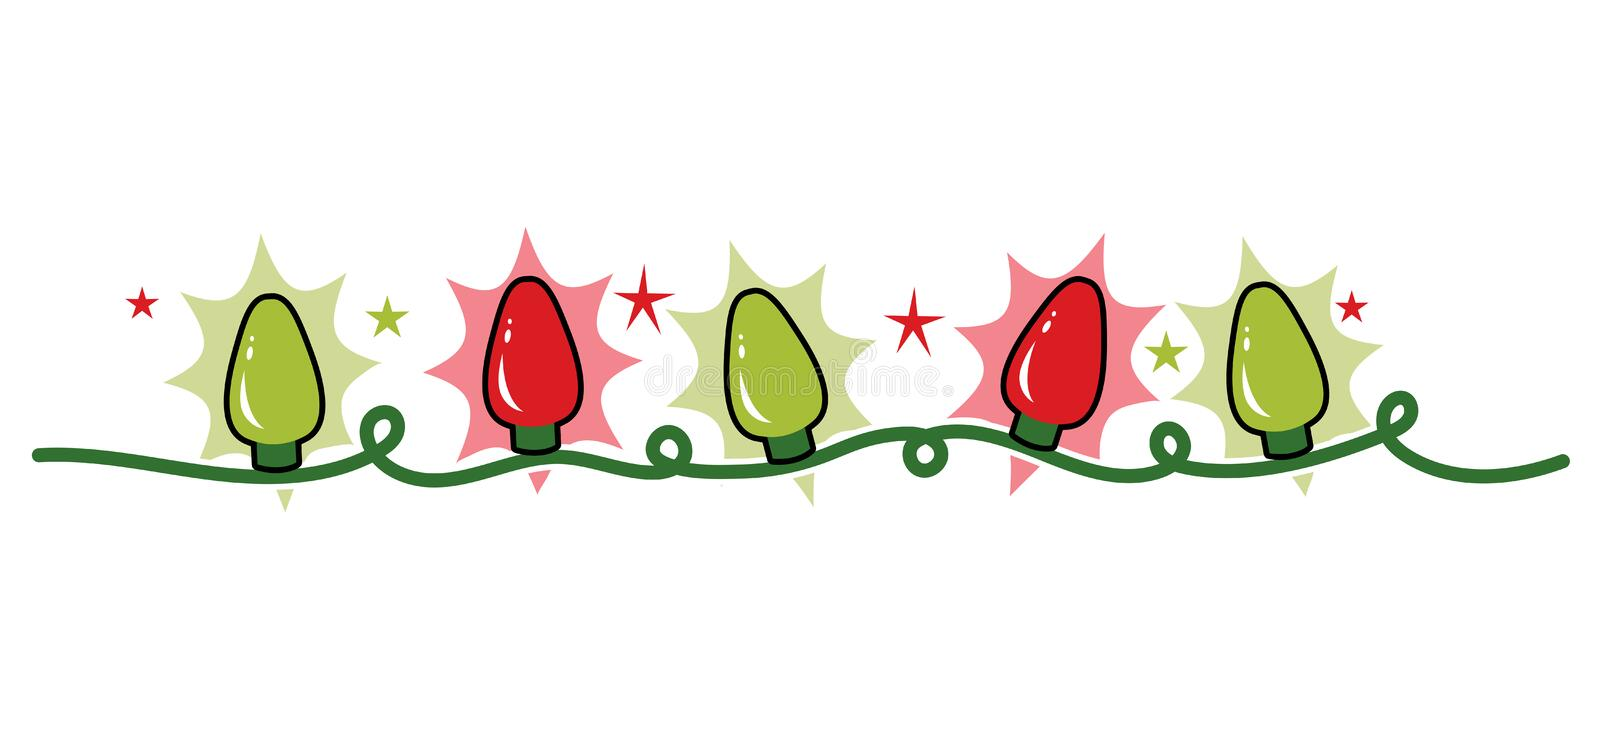 Strand string of holiday Christmas lights, red and green stock illustration